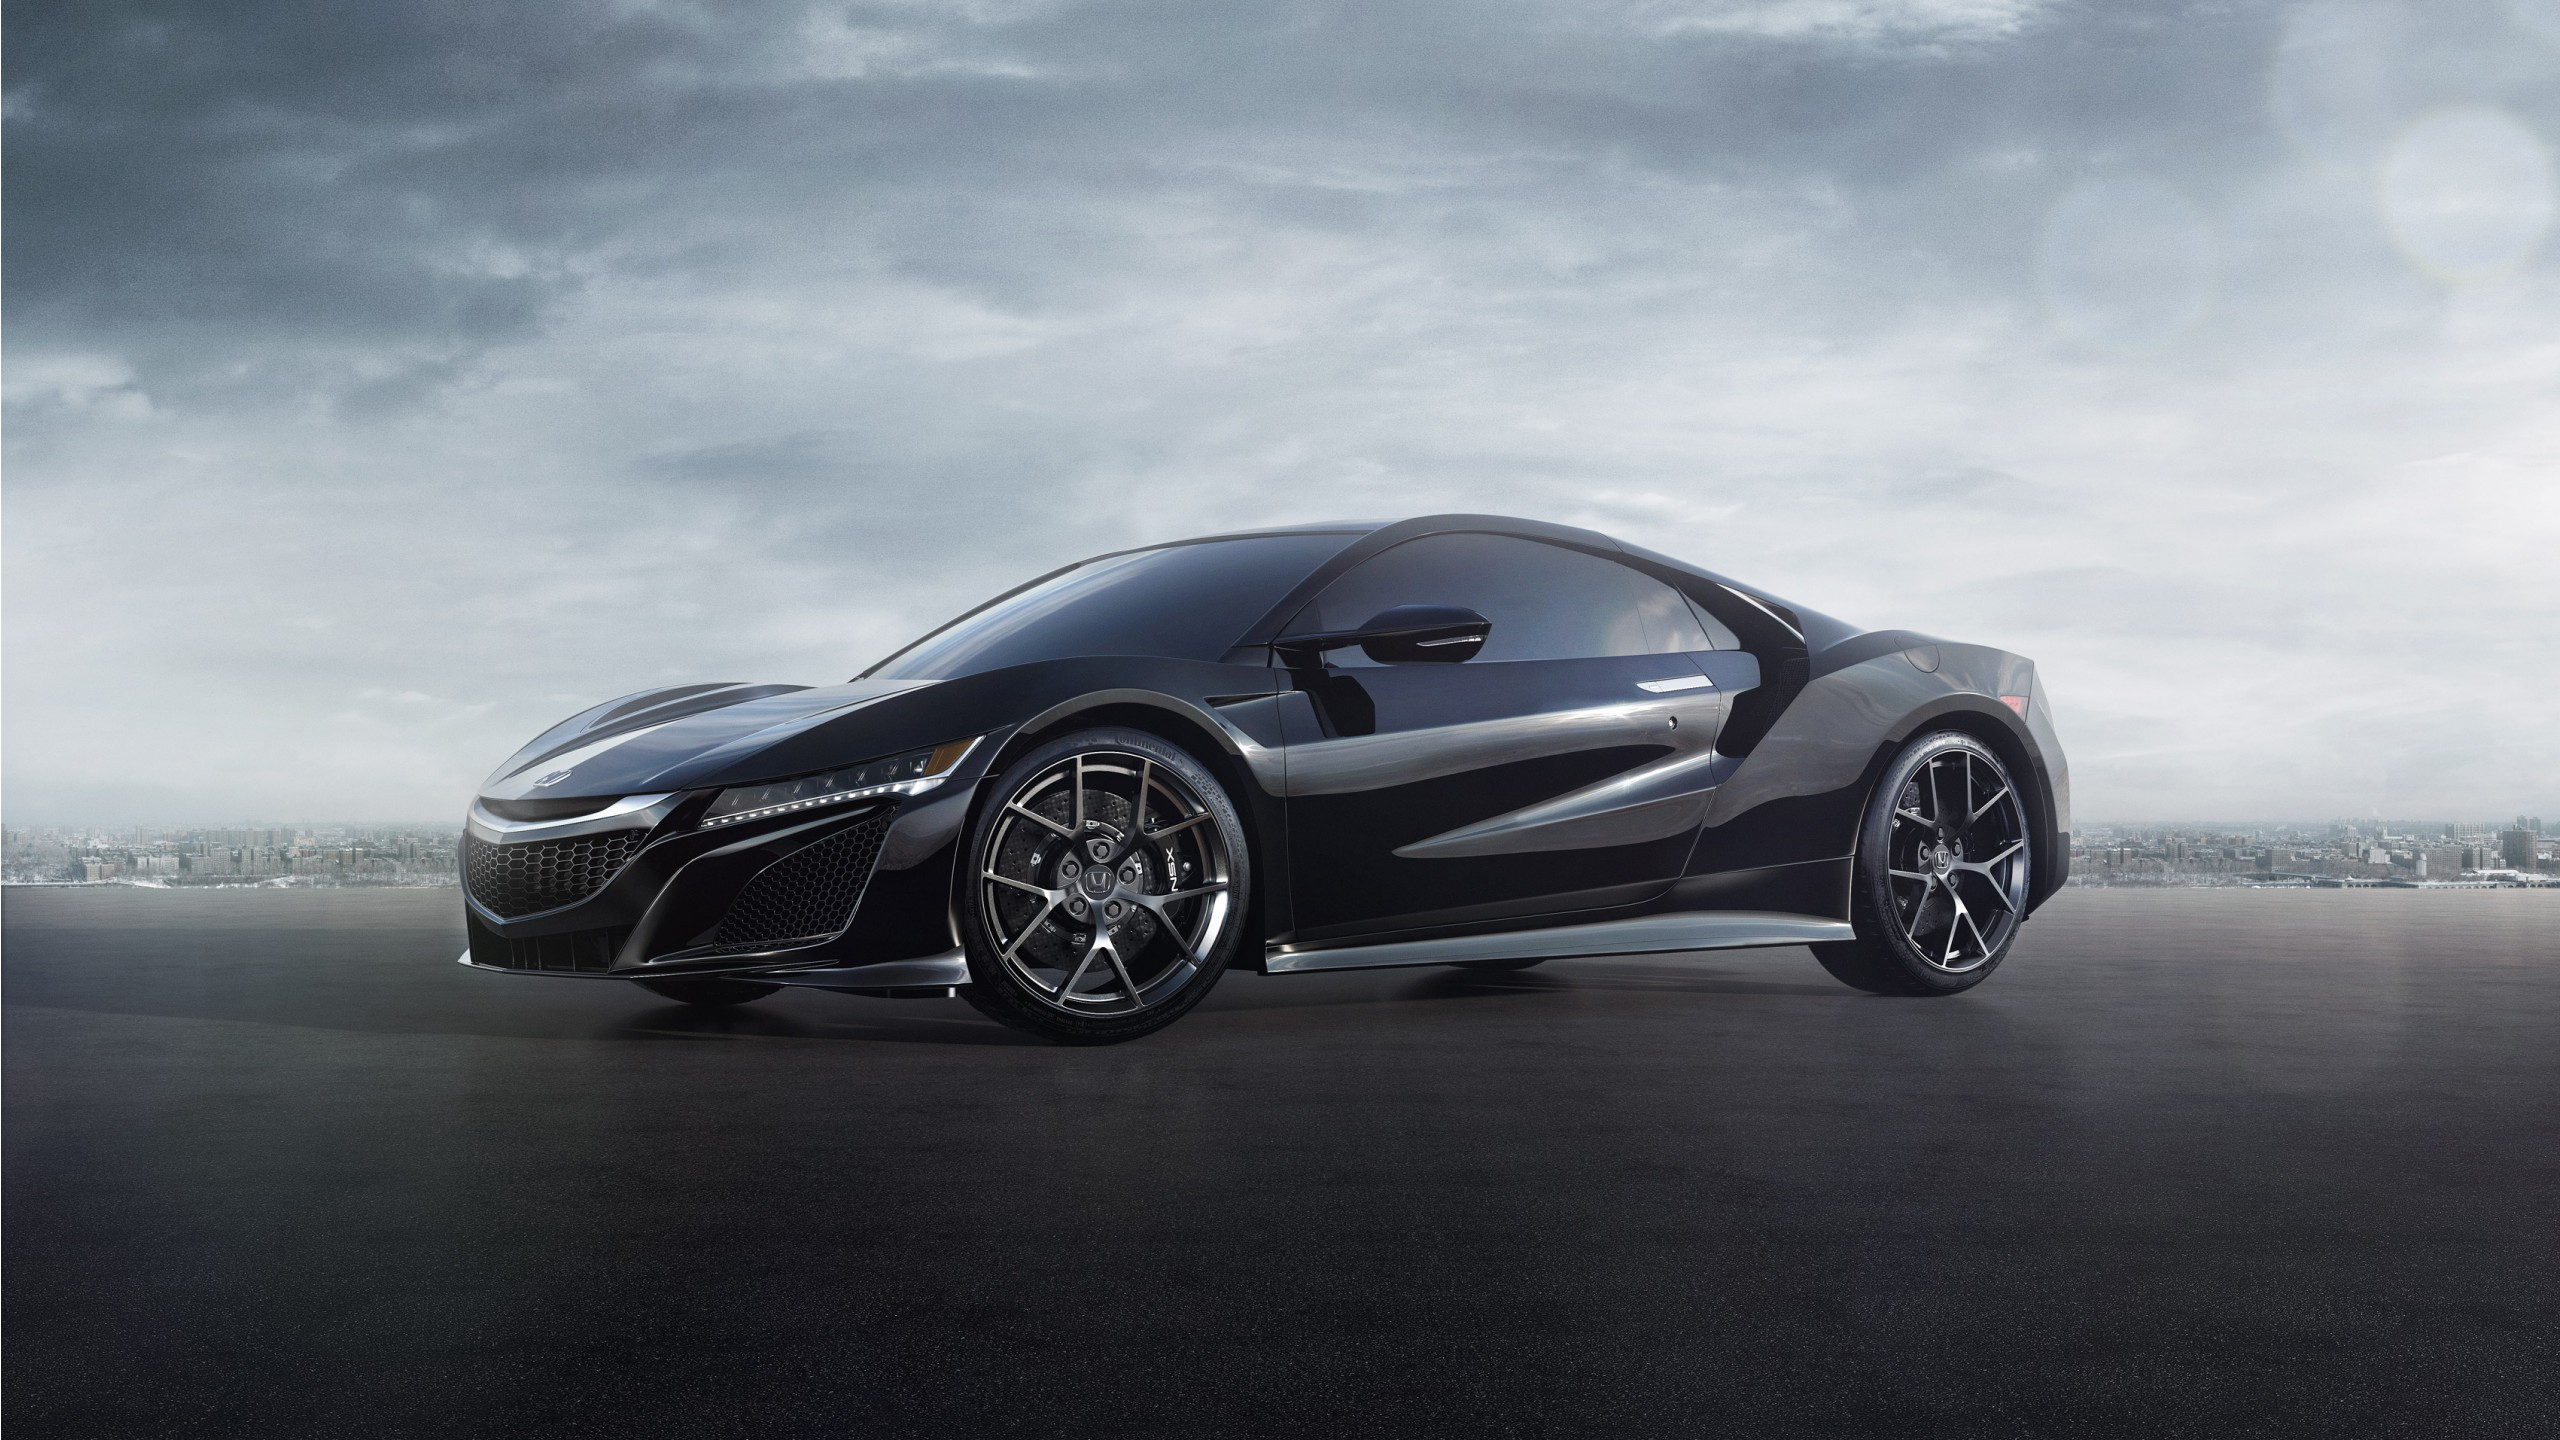 Honda NSX 2018 Wallpaper HD Car Wallpapers ID 9123